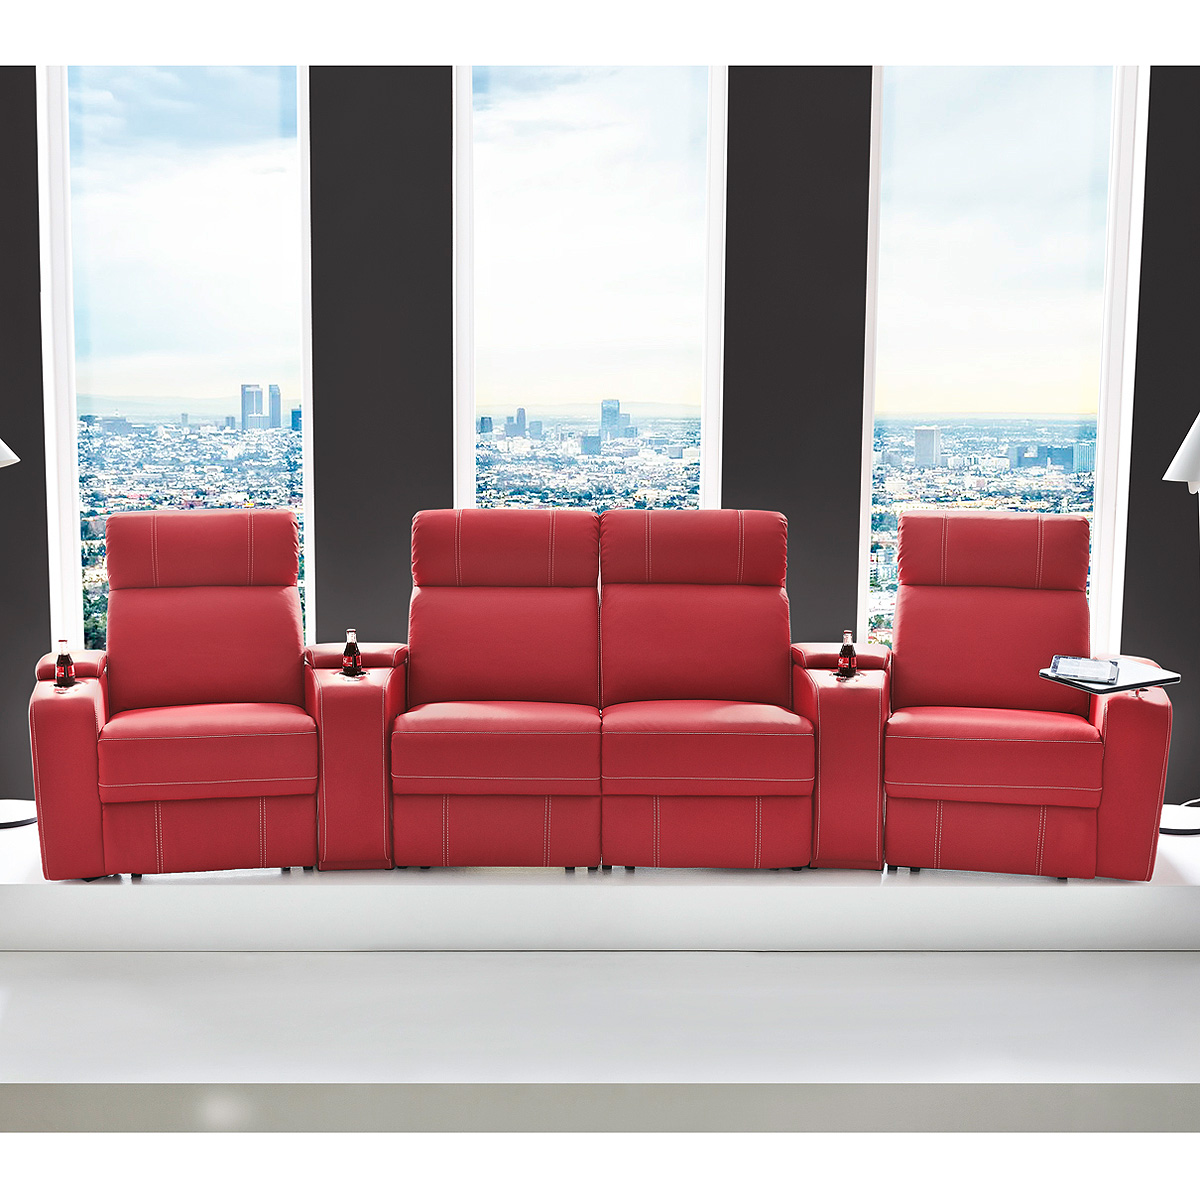 cinema sessel hollywood 4er kinosessel kinosofa sofa getr nkehalter farbauswahl ebay. Black Bedroom Furniture Sets. Home Design Ideas